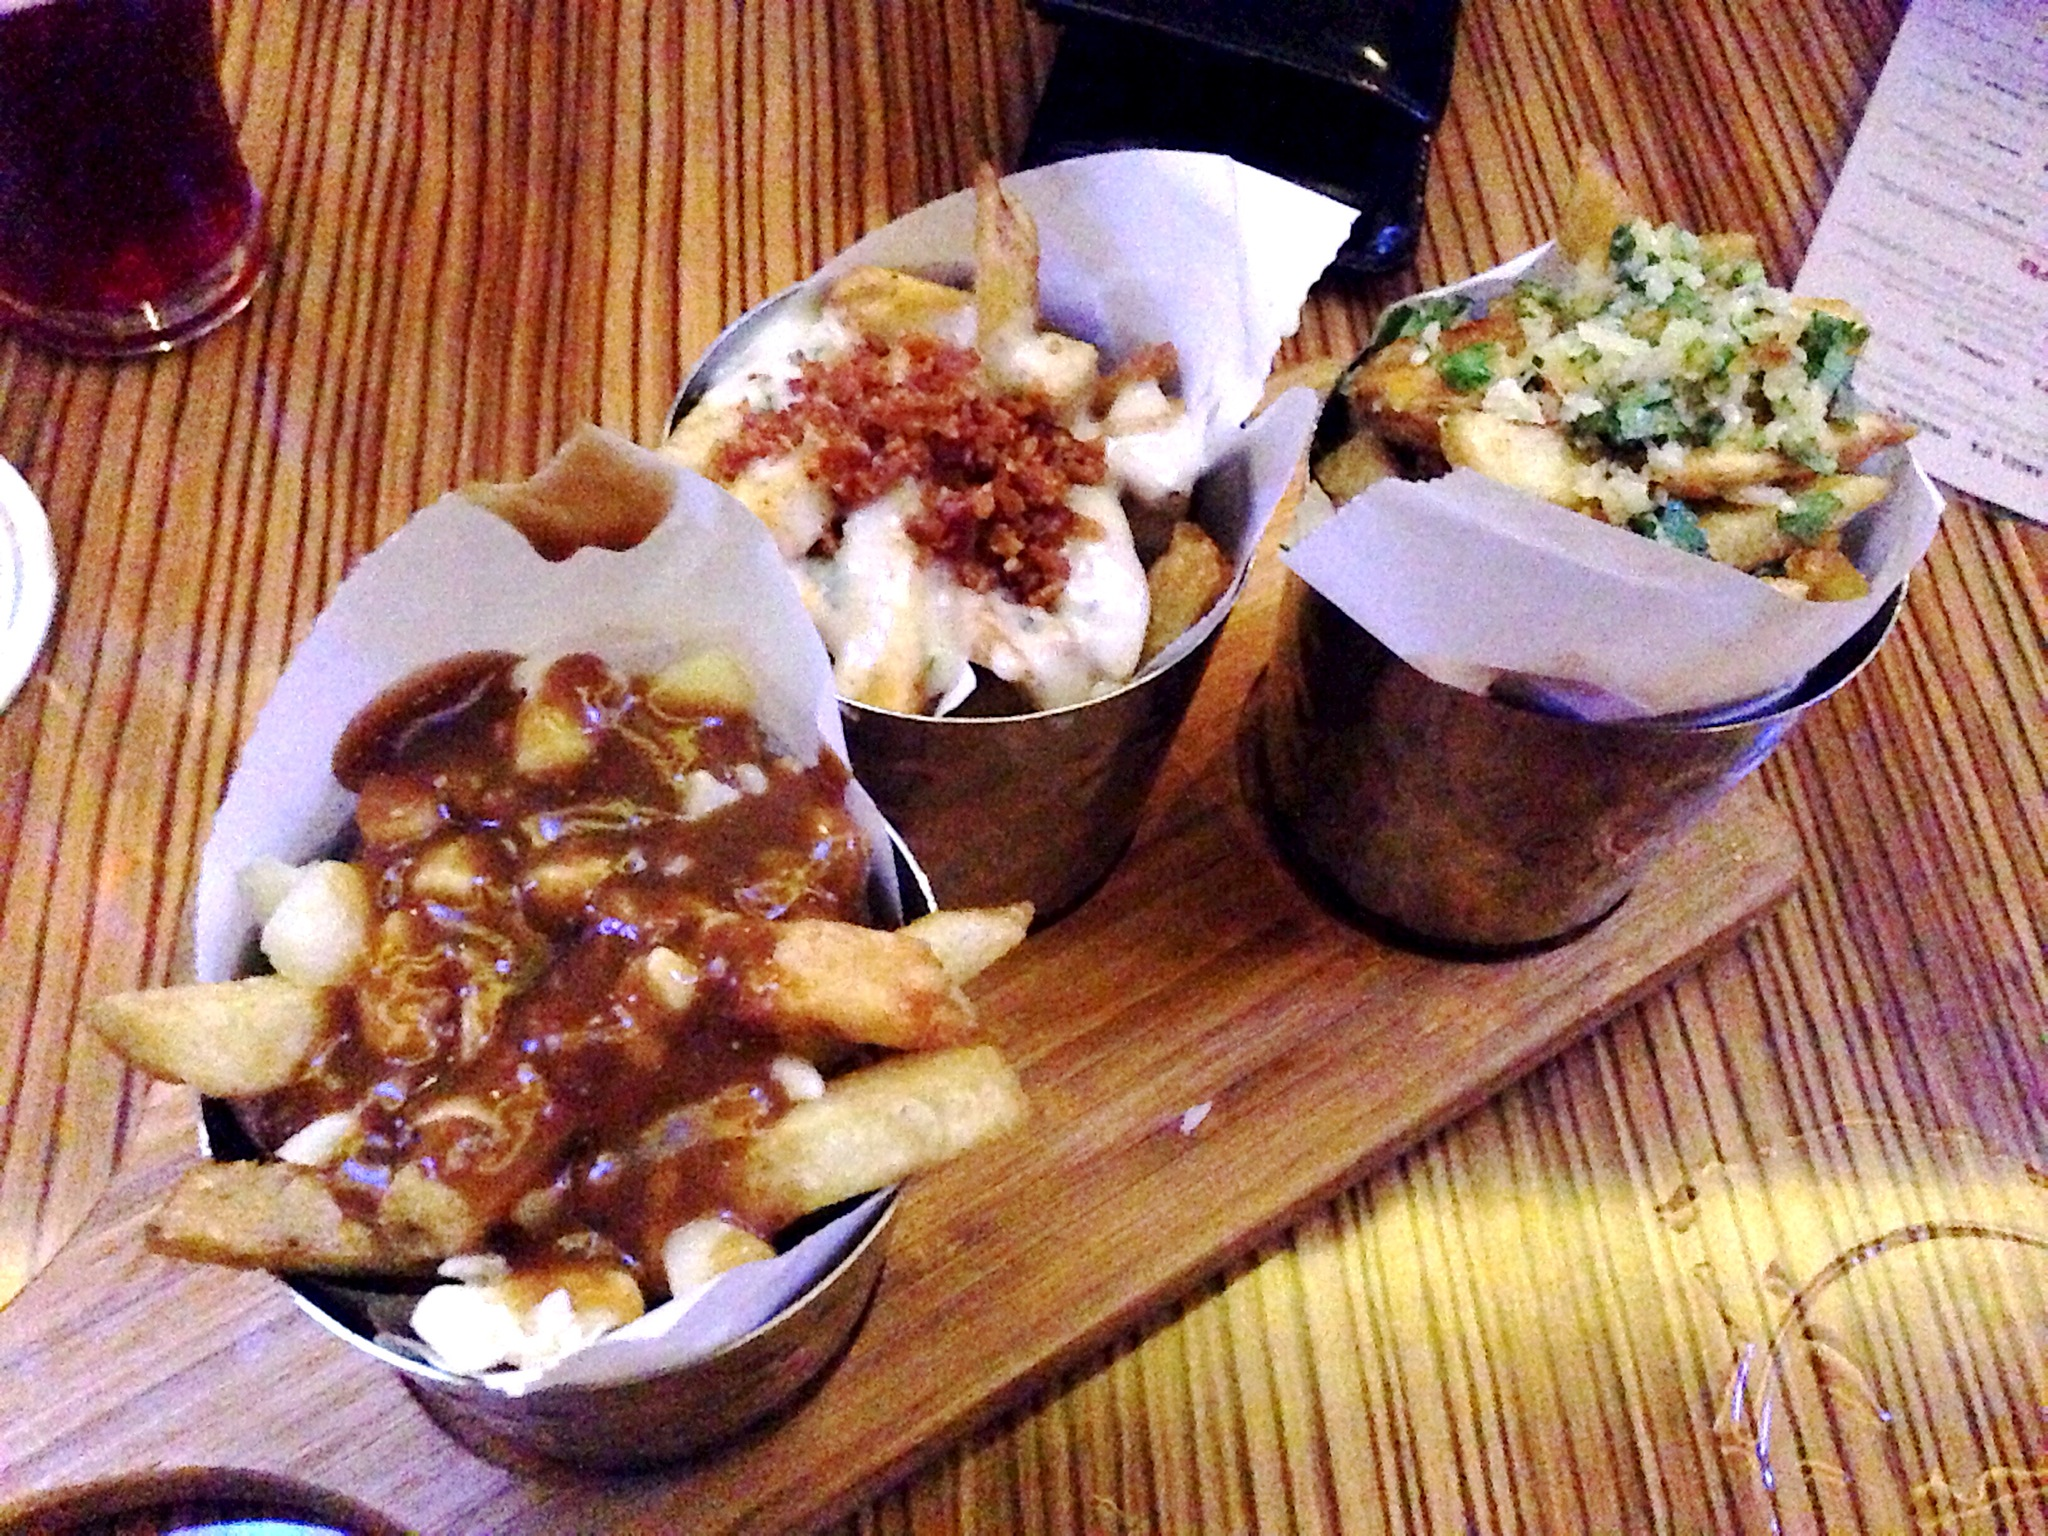 Fries x 3: Gorgonzola cream & bacon, Poutine, Truffle oil & parmesan @ Rogue Kitchen & WetBar